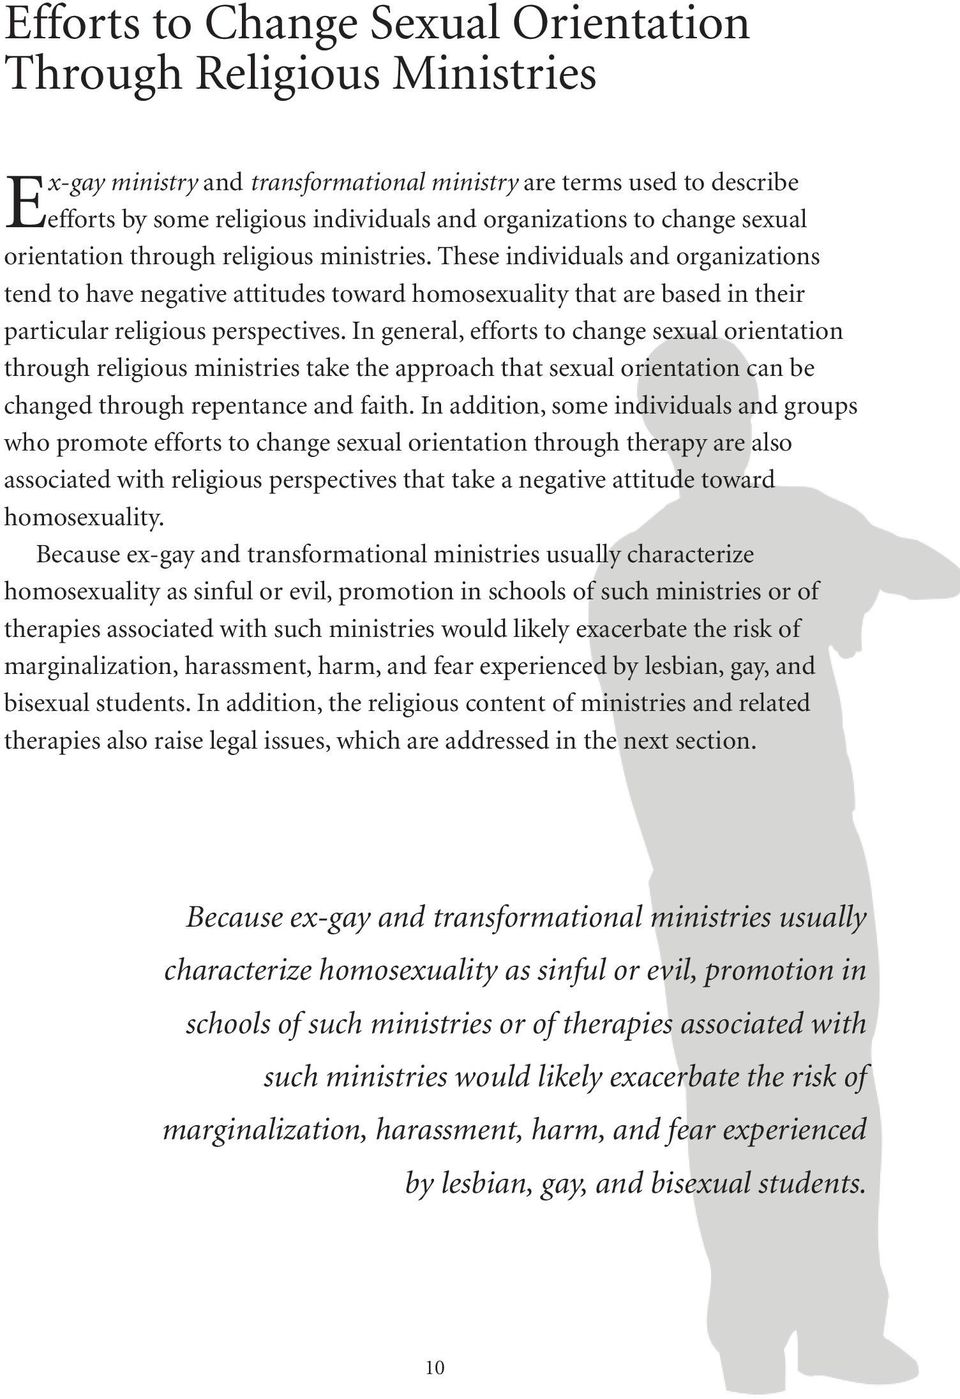 These individuals and organizations tend to have negative attitudes toward homosexuality that are based in their particular religious perspectives.